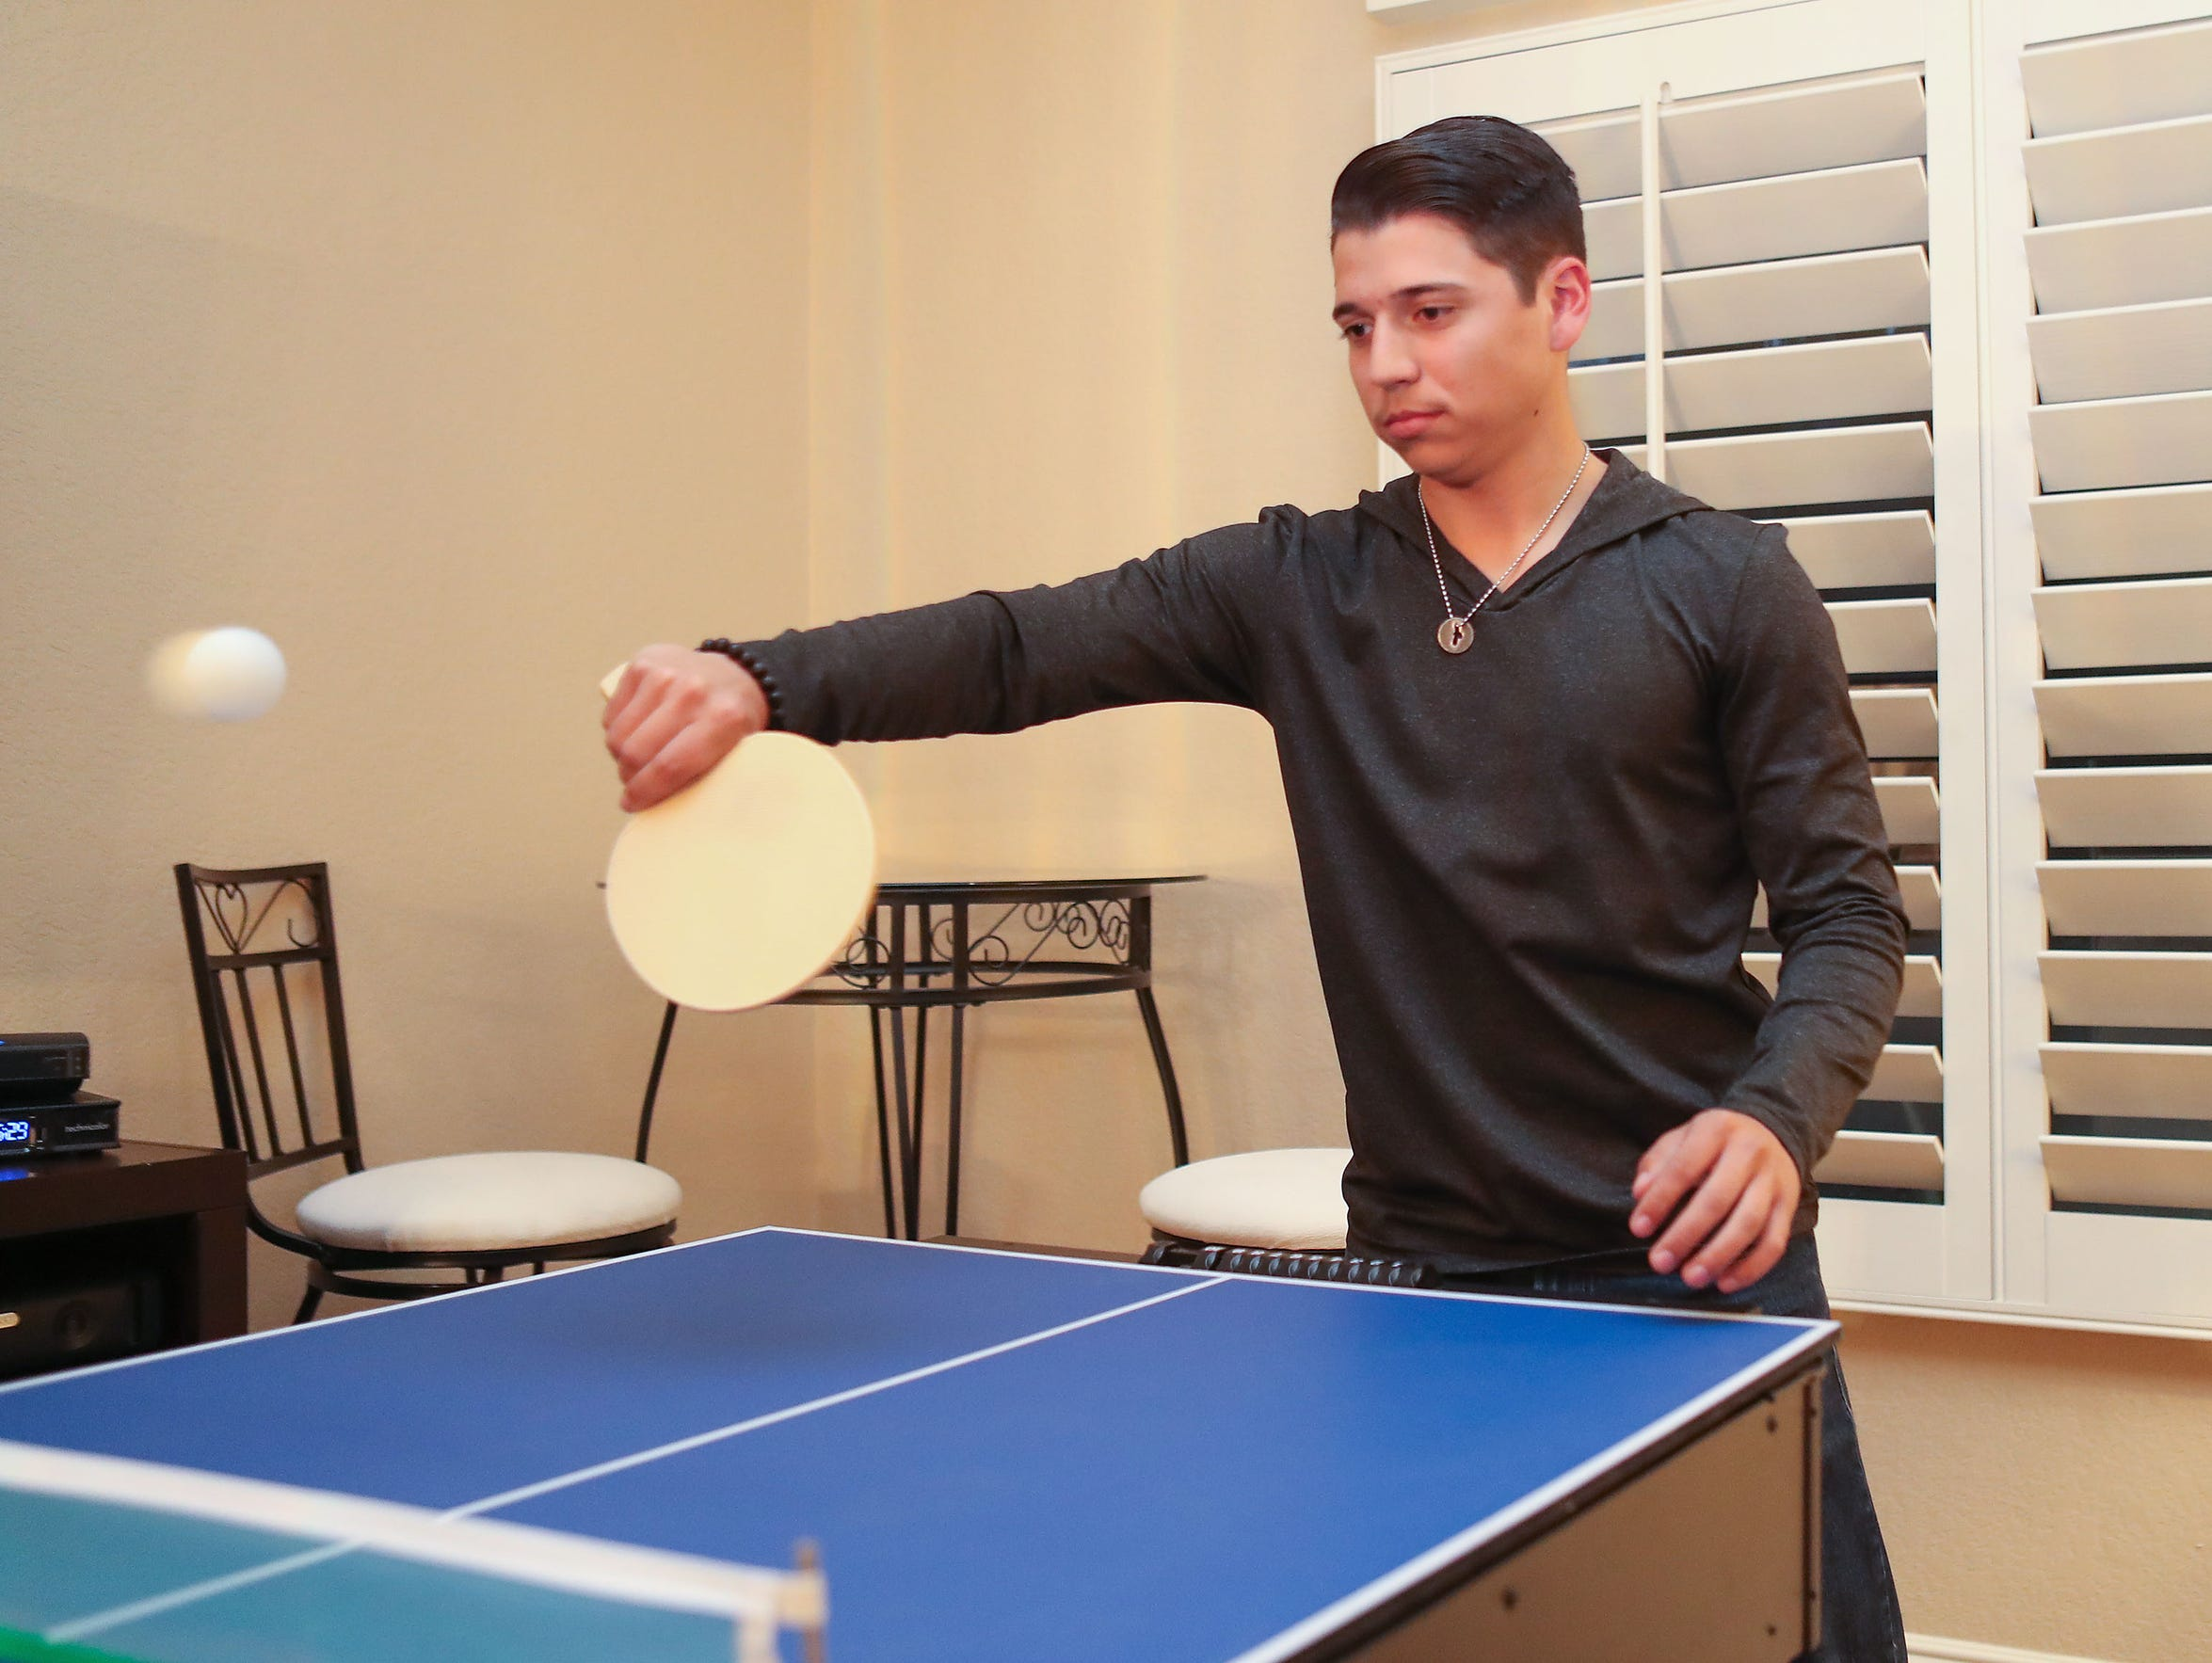 Kevin Salamone has used ping-pong to improve his hand-eye